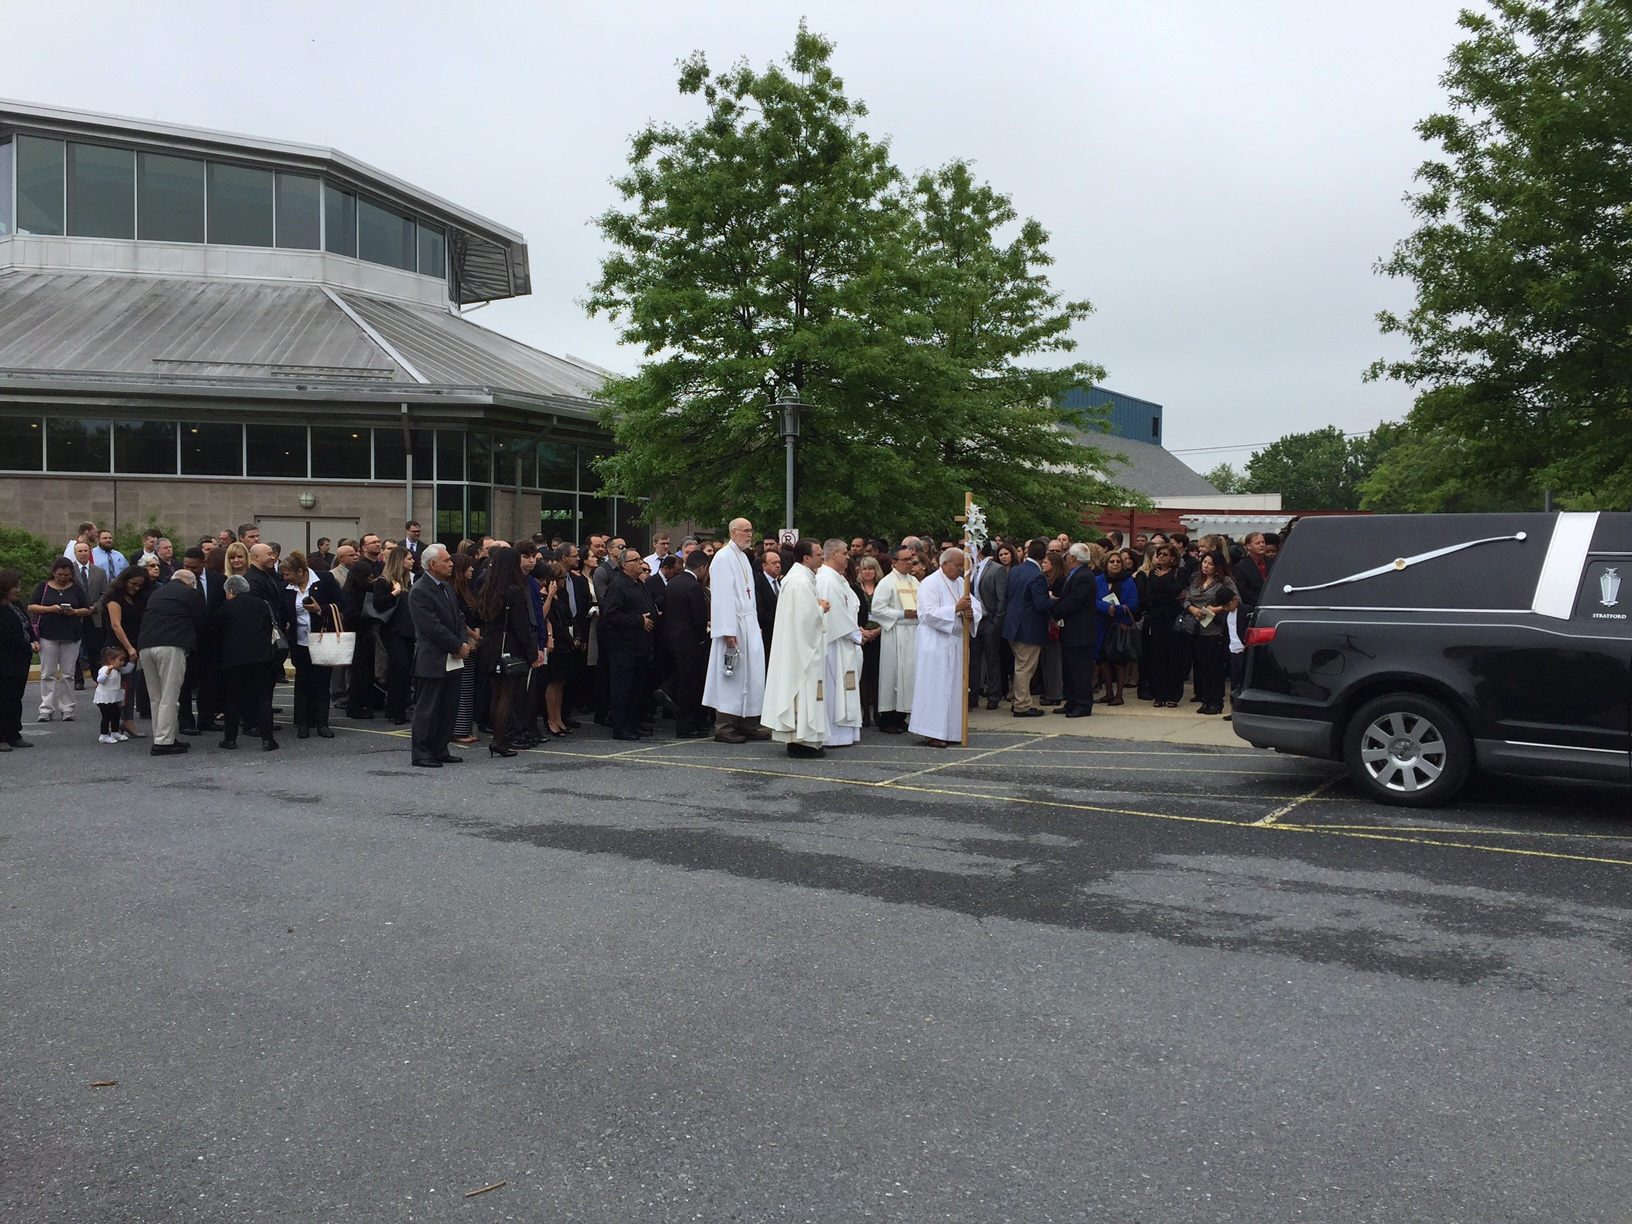 Malcom Winffel of Boyds was remembered as a hero at his funeral Thursday. (WTOP/John Aaron)